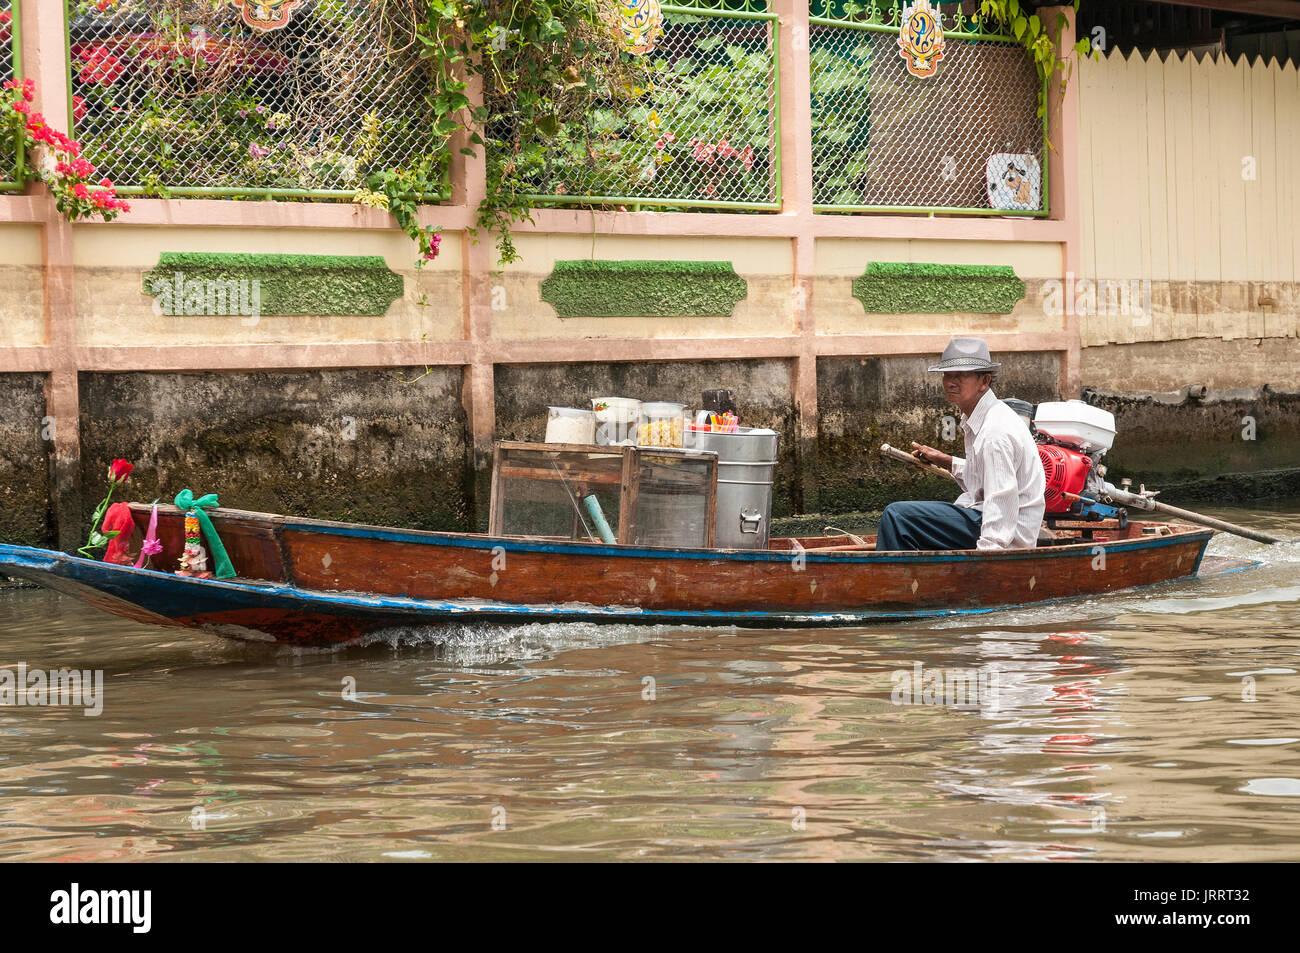 Waterborne food vendor on the Khlongs in Thonburi, Bangkok, Thailand - Stock Image